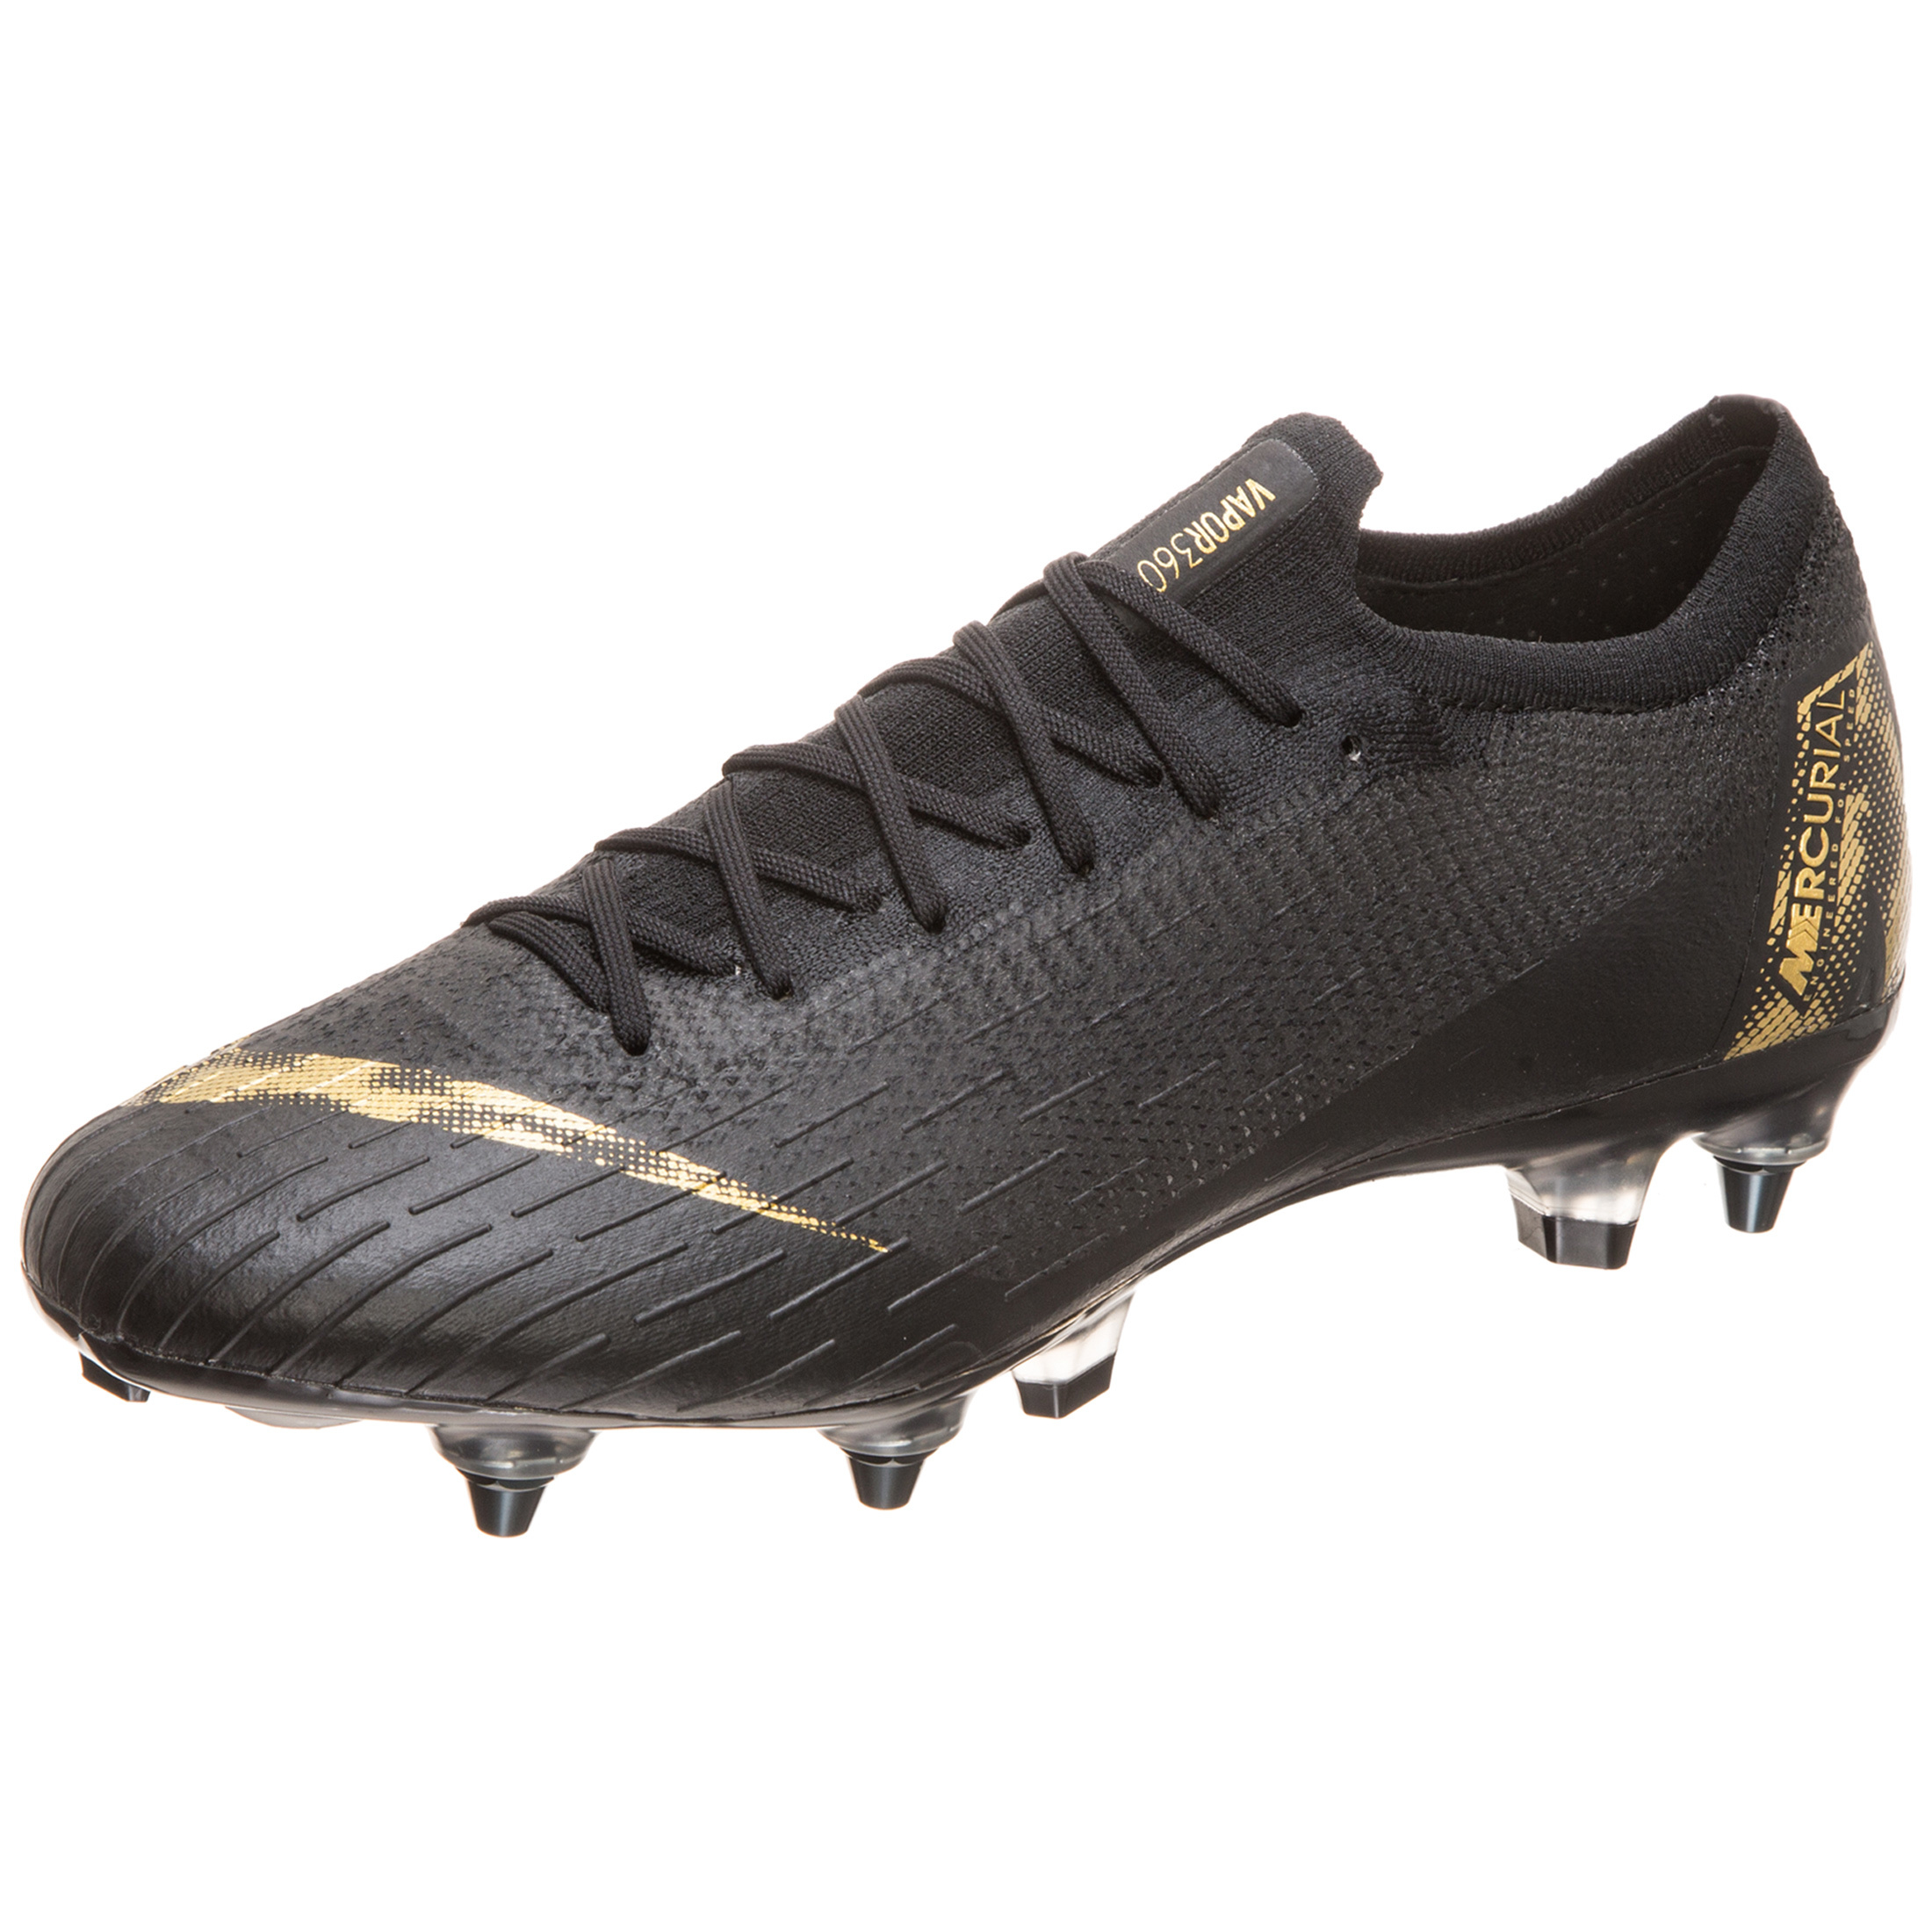 new product a0cdc 913eb Nike Mercurial Vapor 360 Elite SG-PRO Anti-Clog Soft-Ground Football Boot -  Black